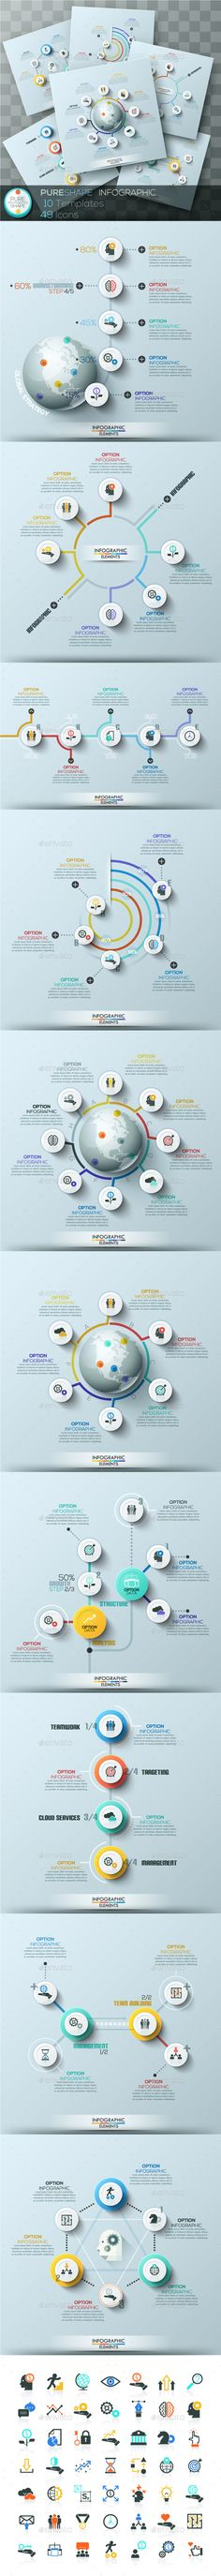 Pure Shape Infographic Templates PSD, Vector EPS, AI. Set 3. Download here: http://graphicriver.net/item/pure-shape-infographic-set-3/15907679?ref=ksioks